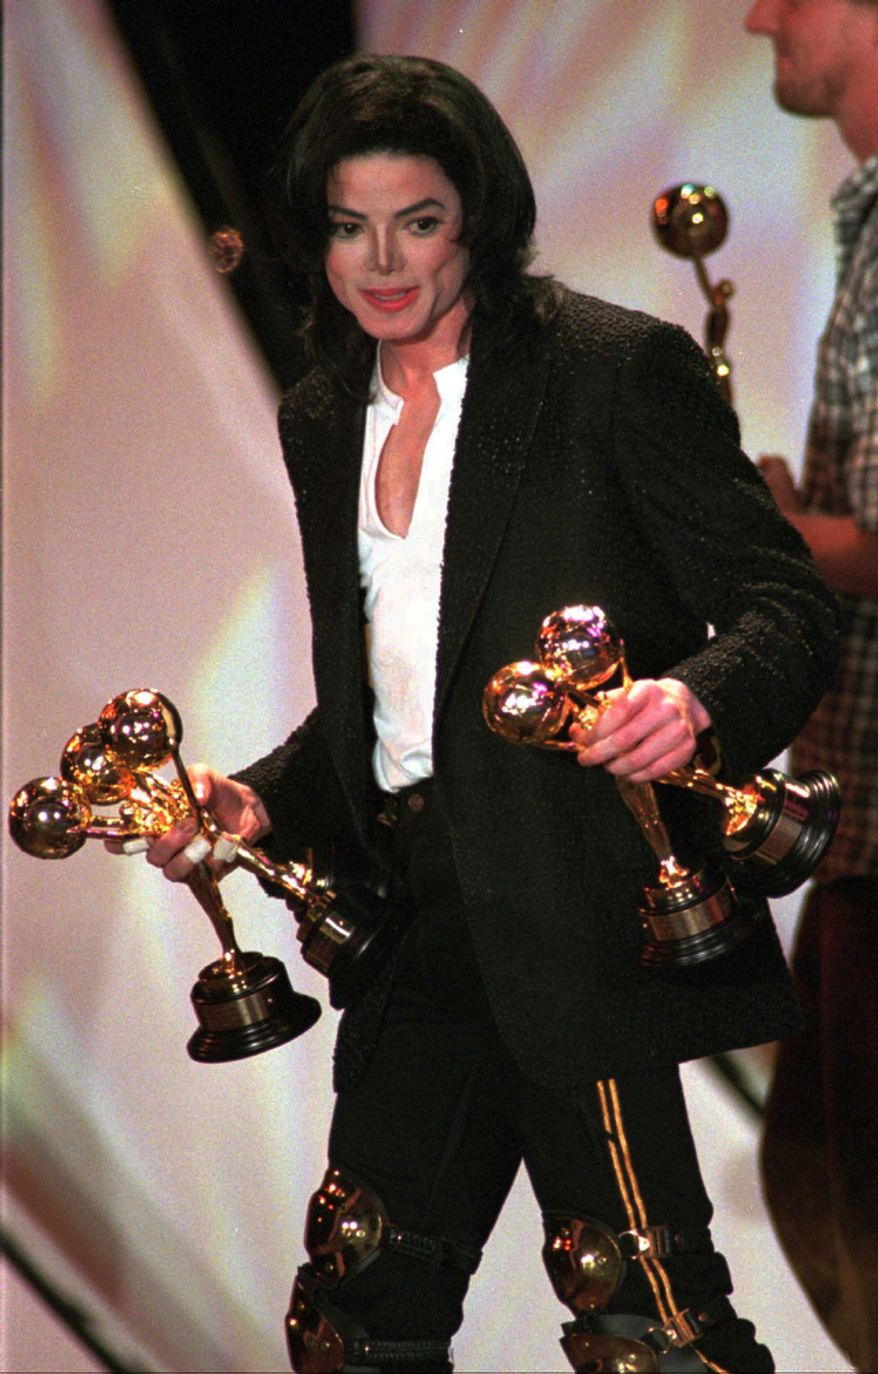 **FILE** Michael Jackson leaves the stage of the Monte Carlo Sporting Club after receiving his fifth trophy during the World Music Awards on May 8, 1996. (Associated Press)